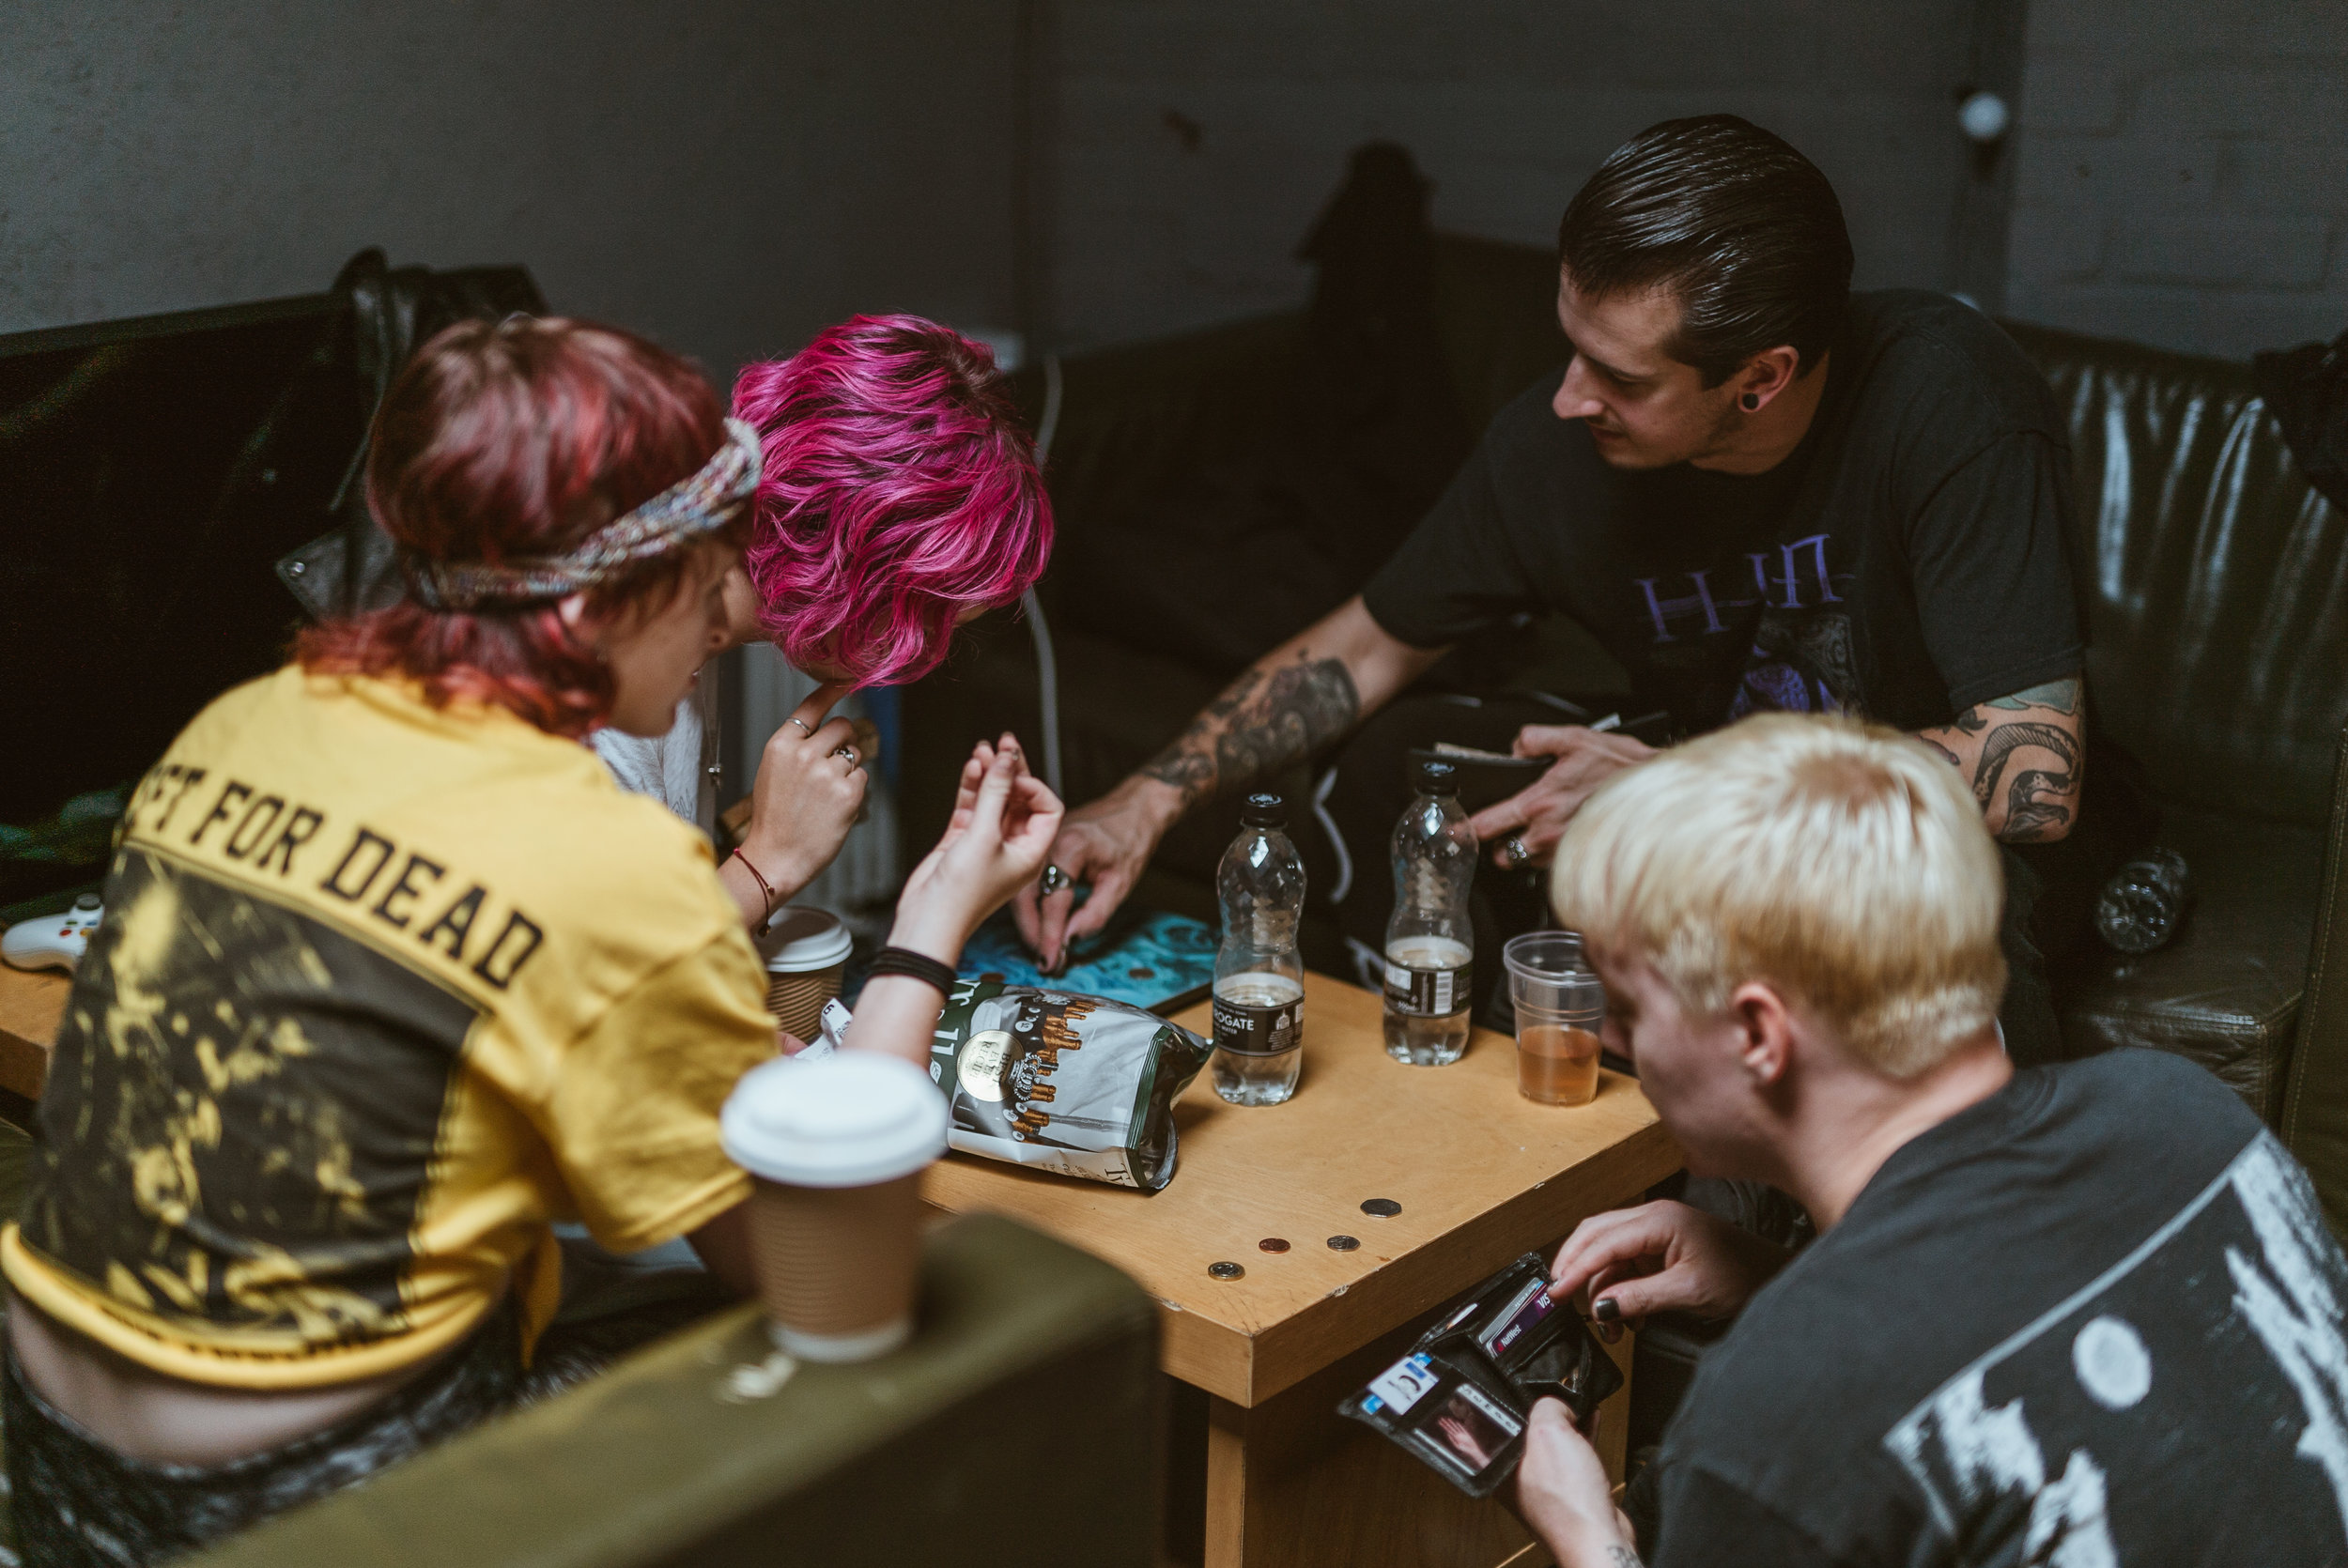 Meghan and Nicole from Doll Skin being taught English currency by Ian and Sean (Creeper)